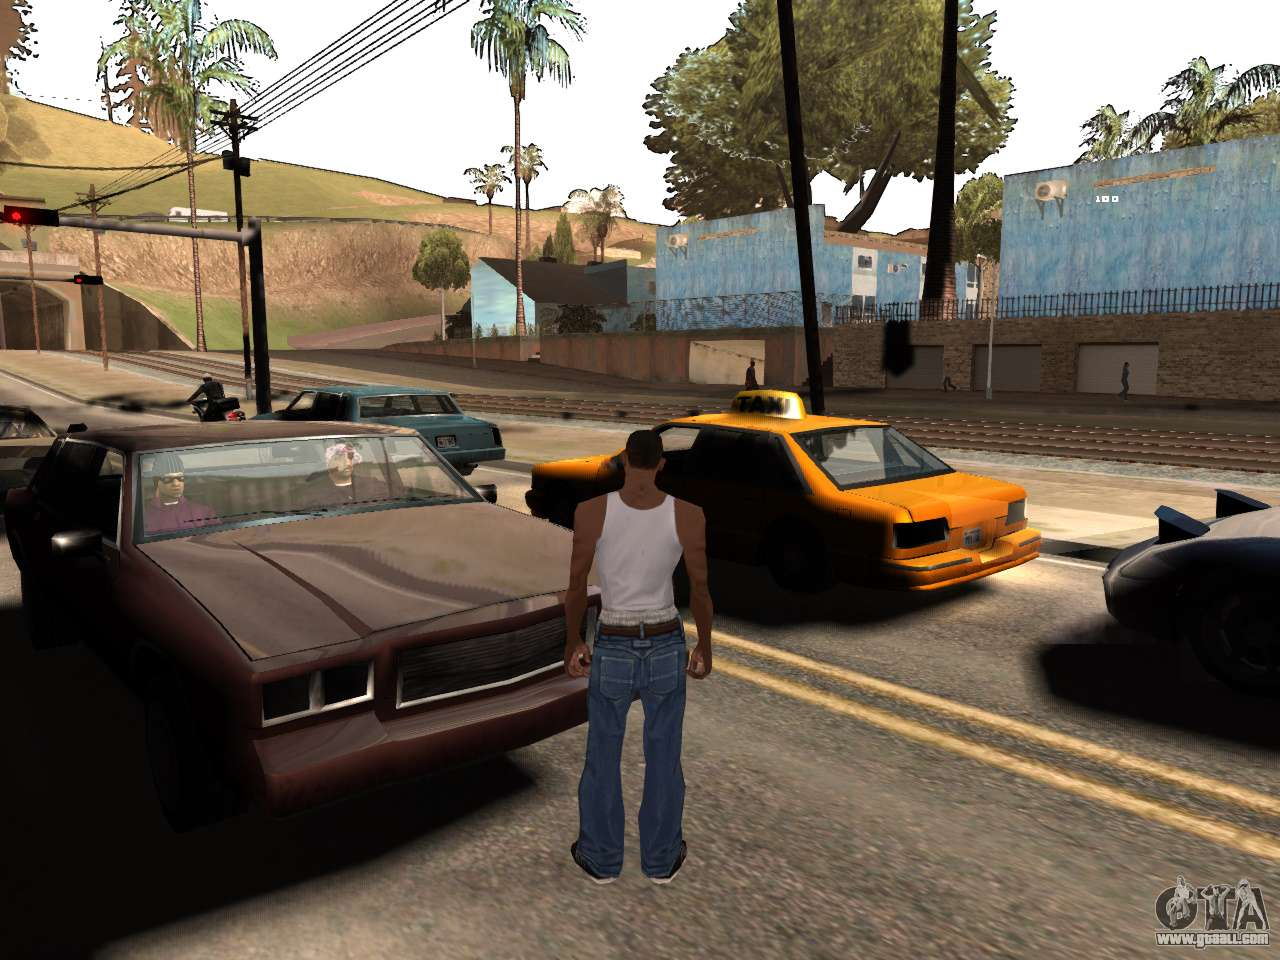 GTA San Andreas Game Free Download Full Version For PC